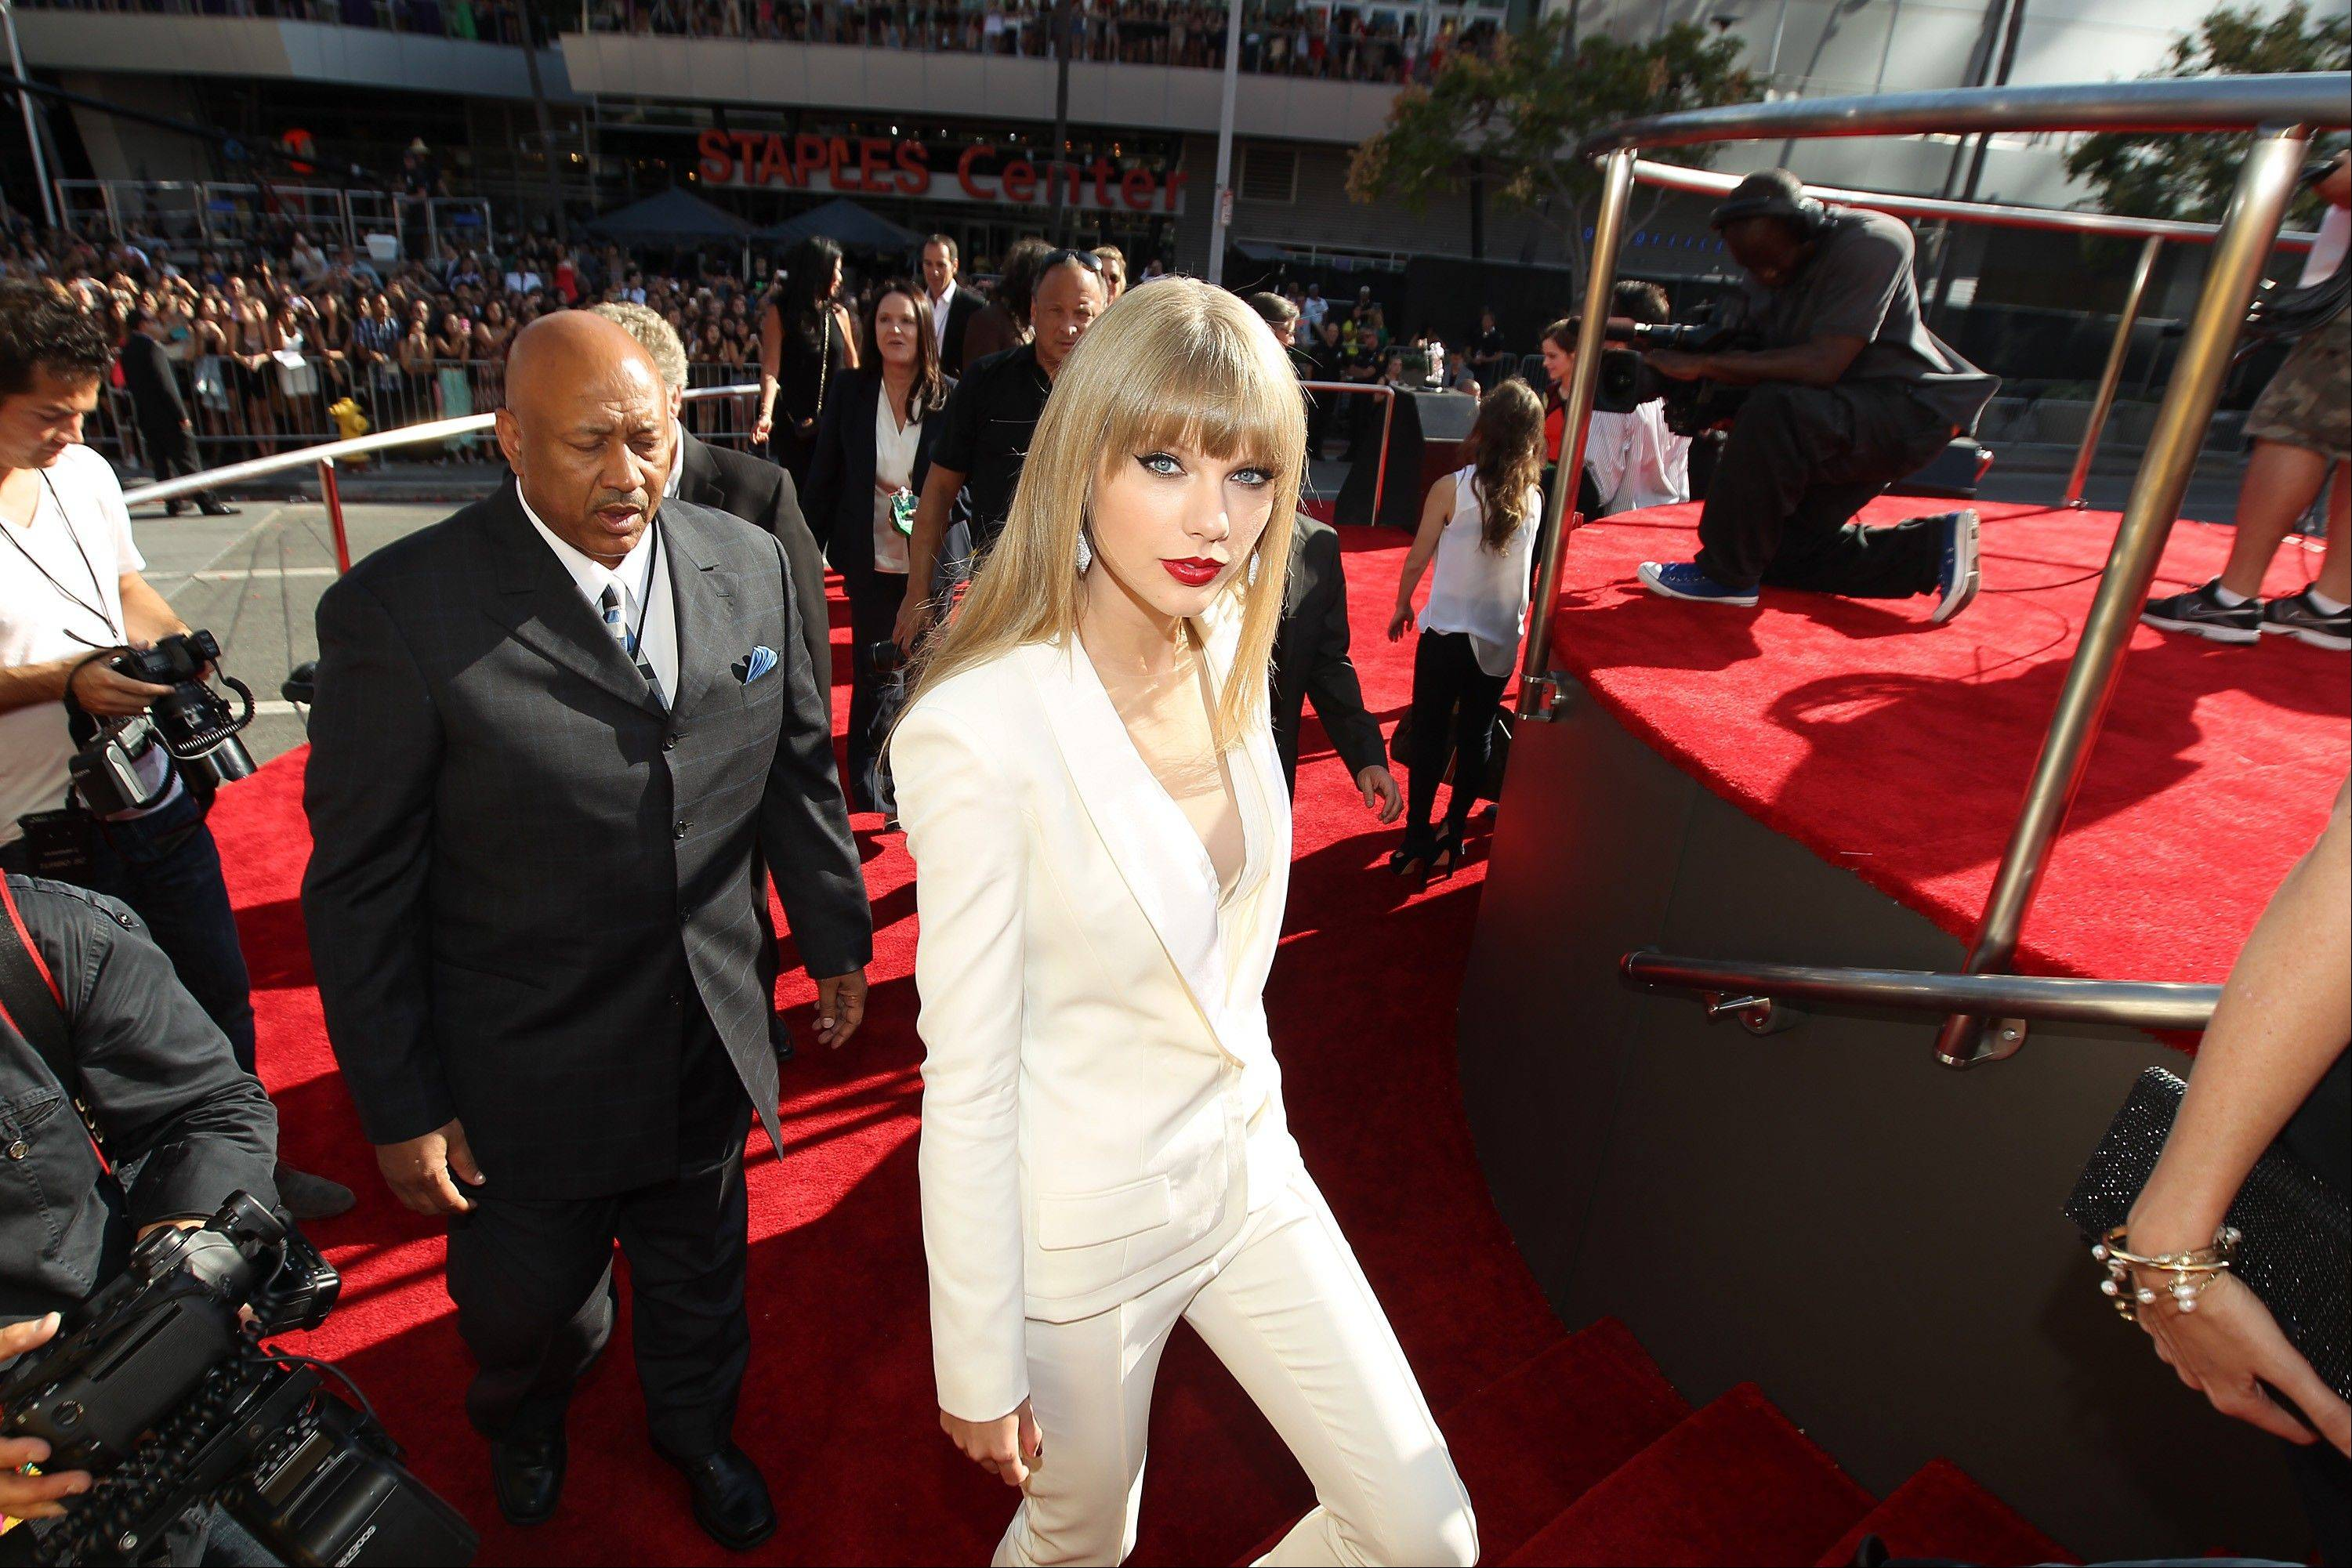 Taylor Swift arrives at the MTV Video Music Awards on Thursday, Sept. 6, 2012, in Los Angeles.